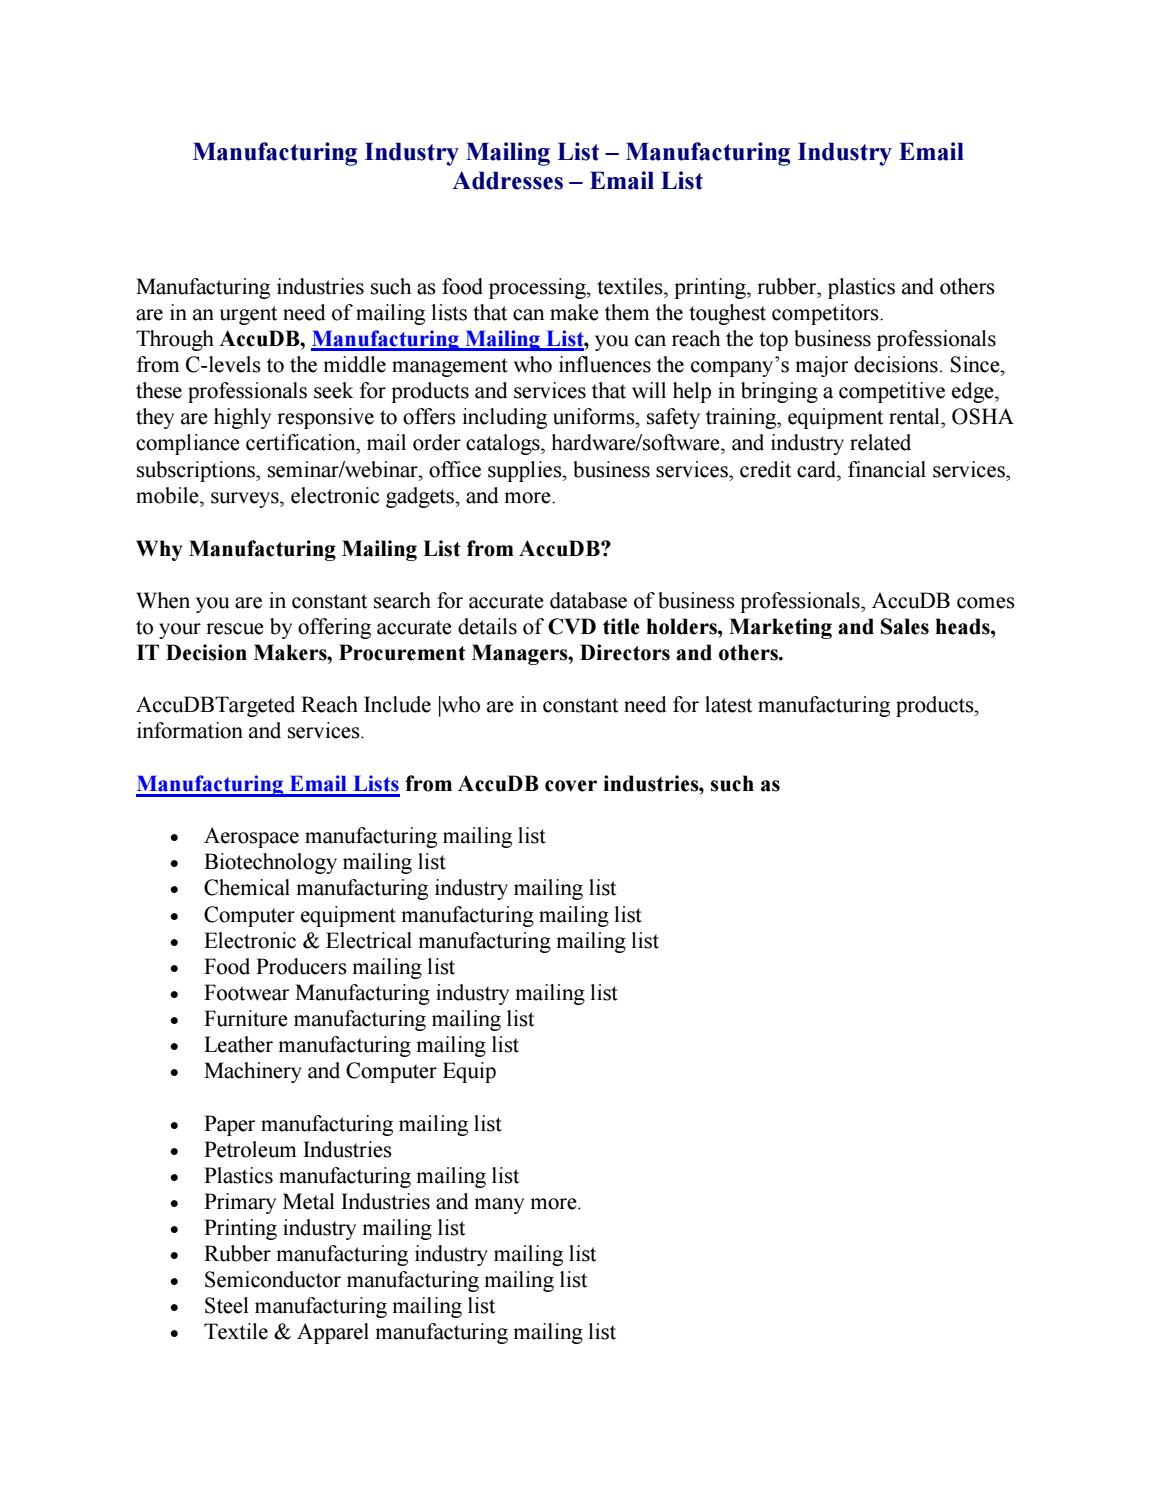 Manufacturing industry mailing list – manufacturing industry